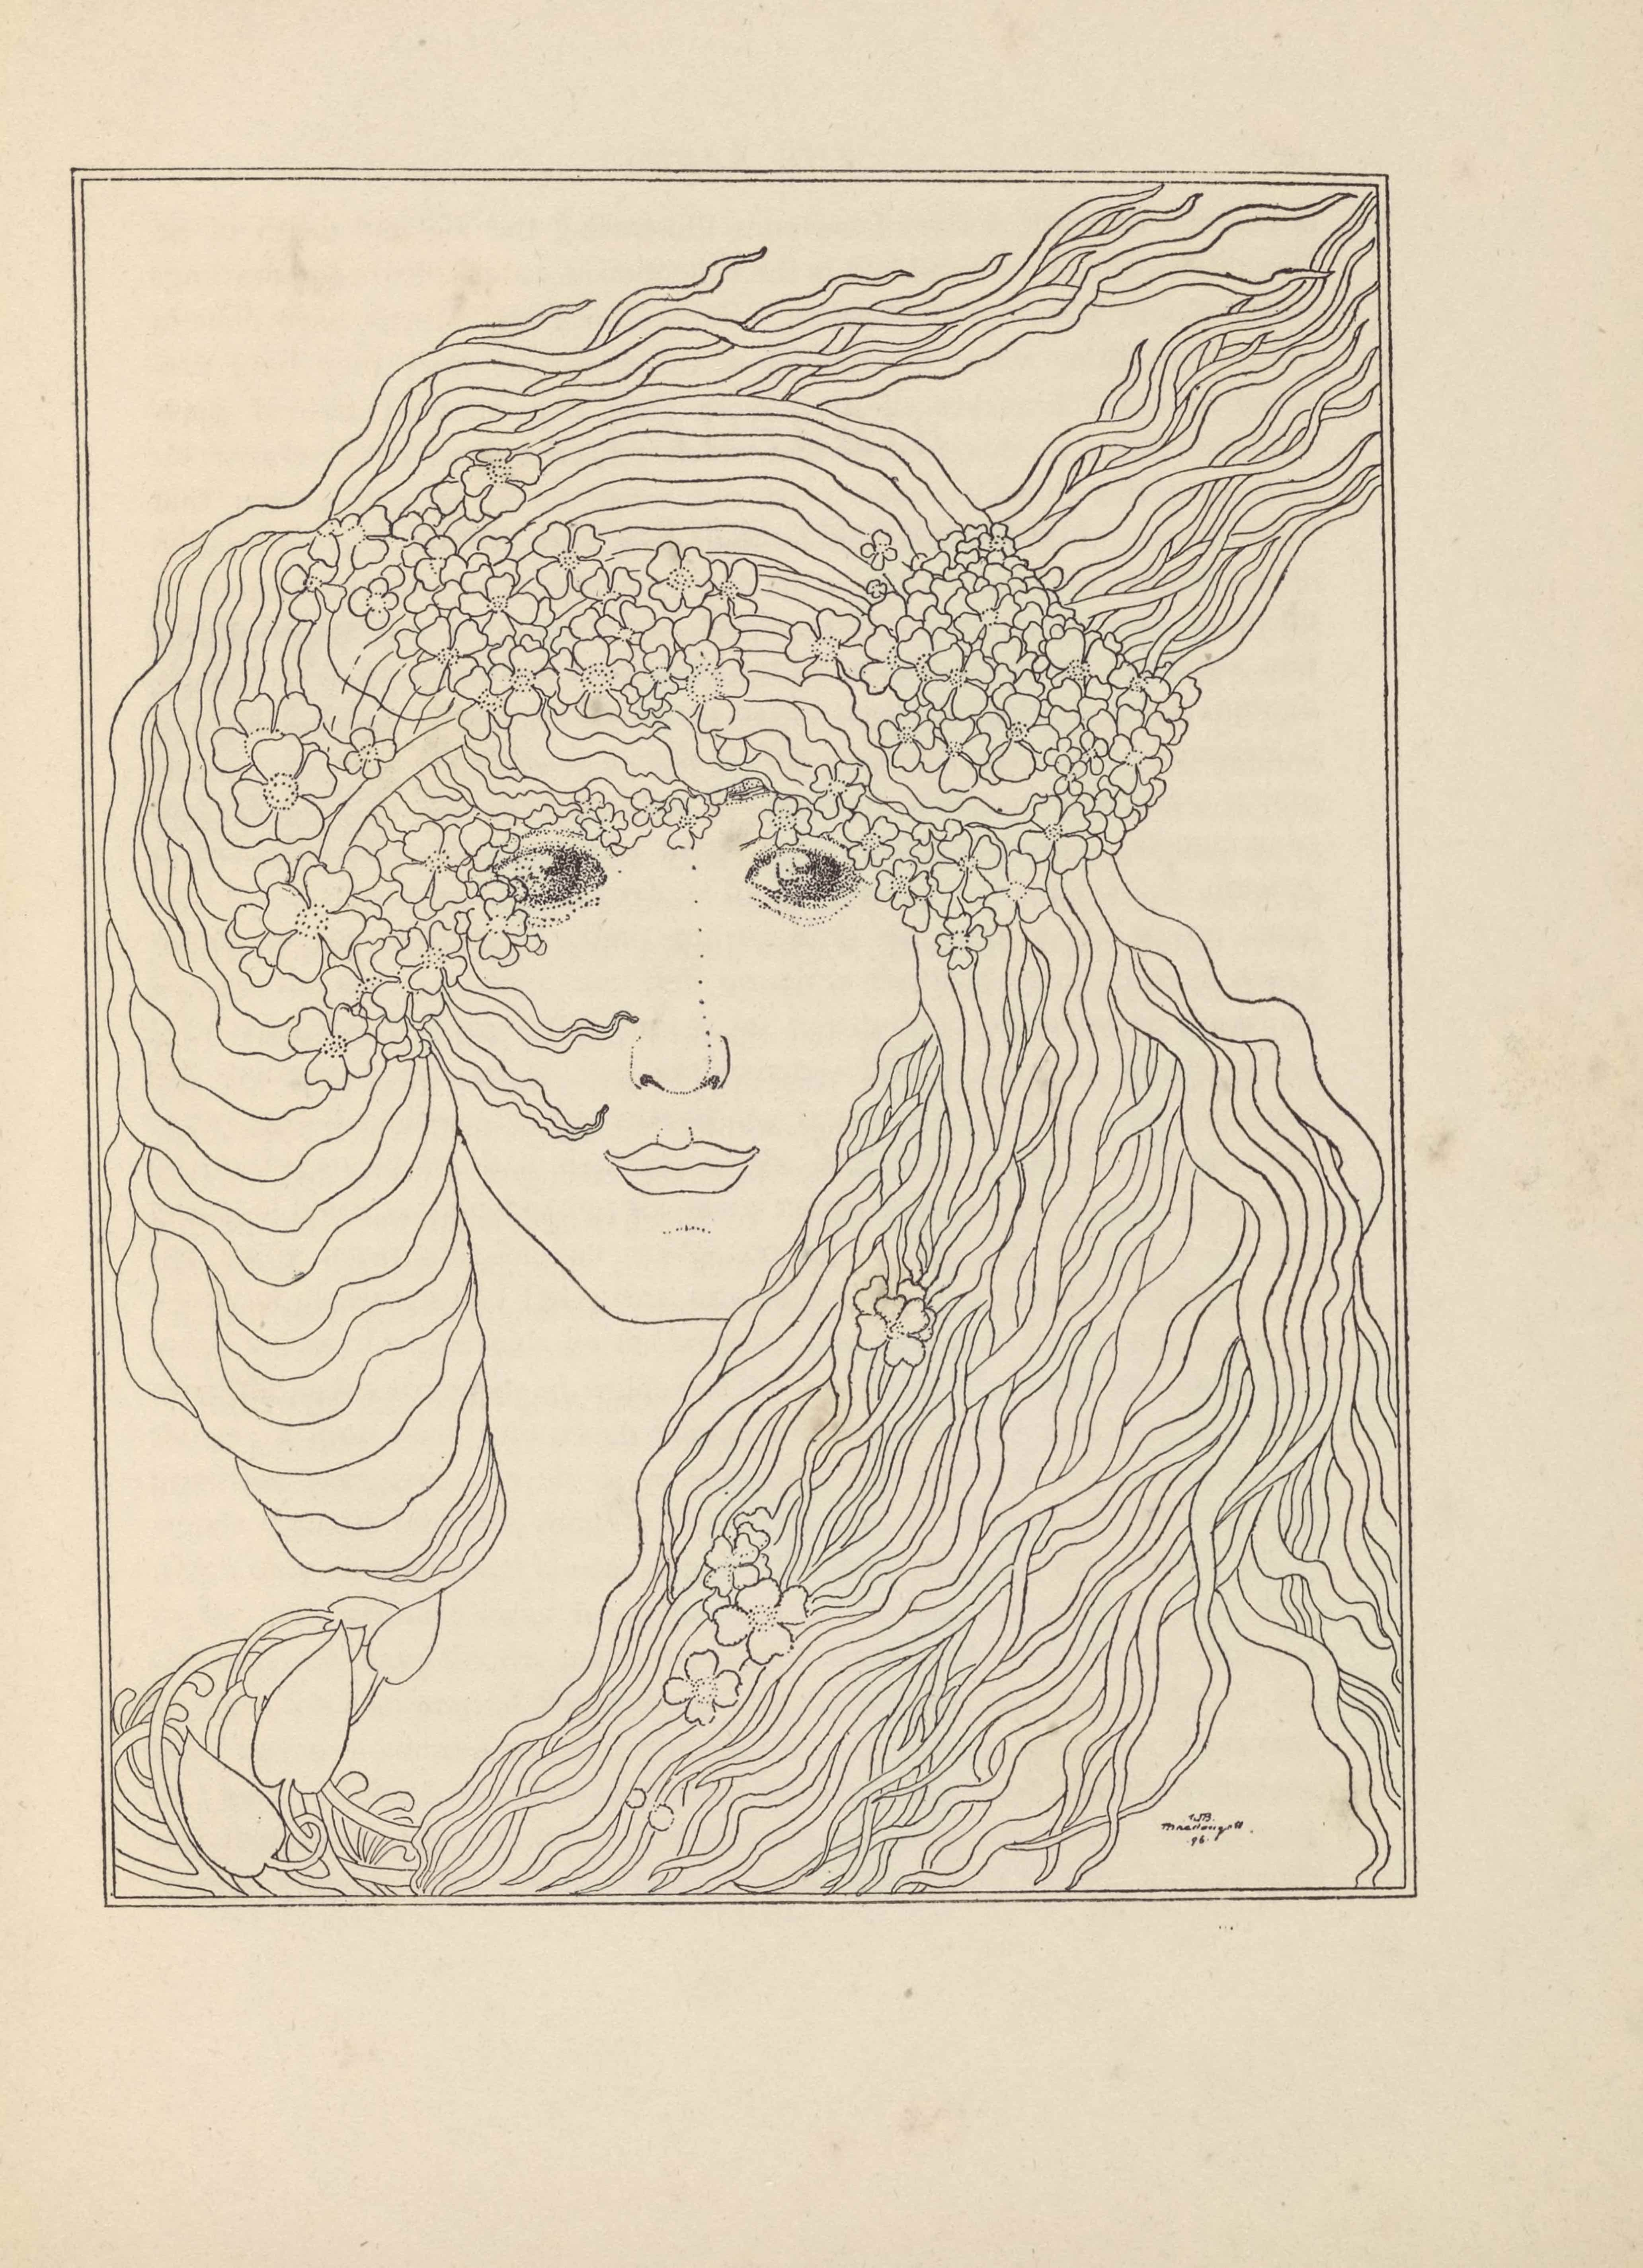 """The line-block reproduction of a pen-and-ink drawing by W. B. Macdougall is in portrait orientation and bordered by a double lined rectangular frame. The light line drawing depicts a woman facing forward, showing her face, hair, and neck. Her hair is made of thick wavy strands, framing her left jaw and crossing in front of her neck before curving around her right shoulder. The hair resting on her right shoulder ends in flower petals. The hair on the right side of her head curves up and around the back of her head flowing off into the top right corner of the image. Clustered in her hair around the crown of her head are garlands of four-leaf clovers or four-petaled flowers; there are a few more lower down in her hair as well. Her eyes are sketched via stippling and in this way stand out from the rest of the drawing which is linear. There is a signature at the bottom-right of the image: """"WB Macdougall."""" Beneath the name is the number 96 with a dot on the left and right sides."""